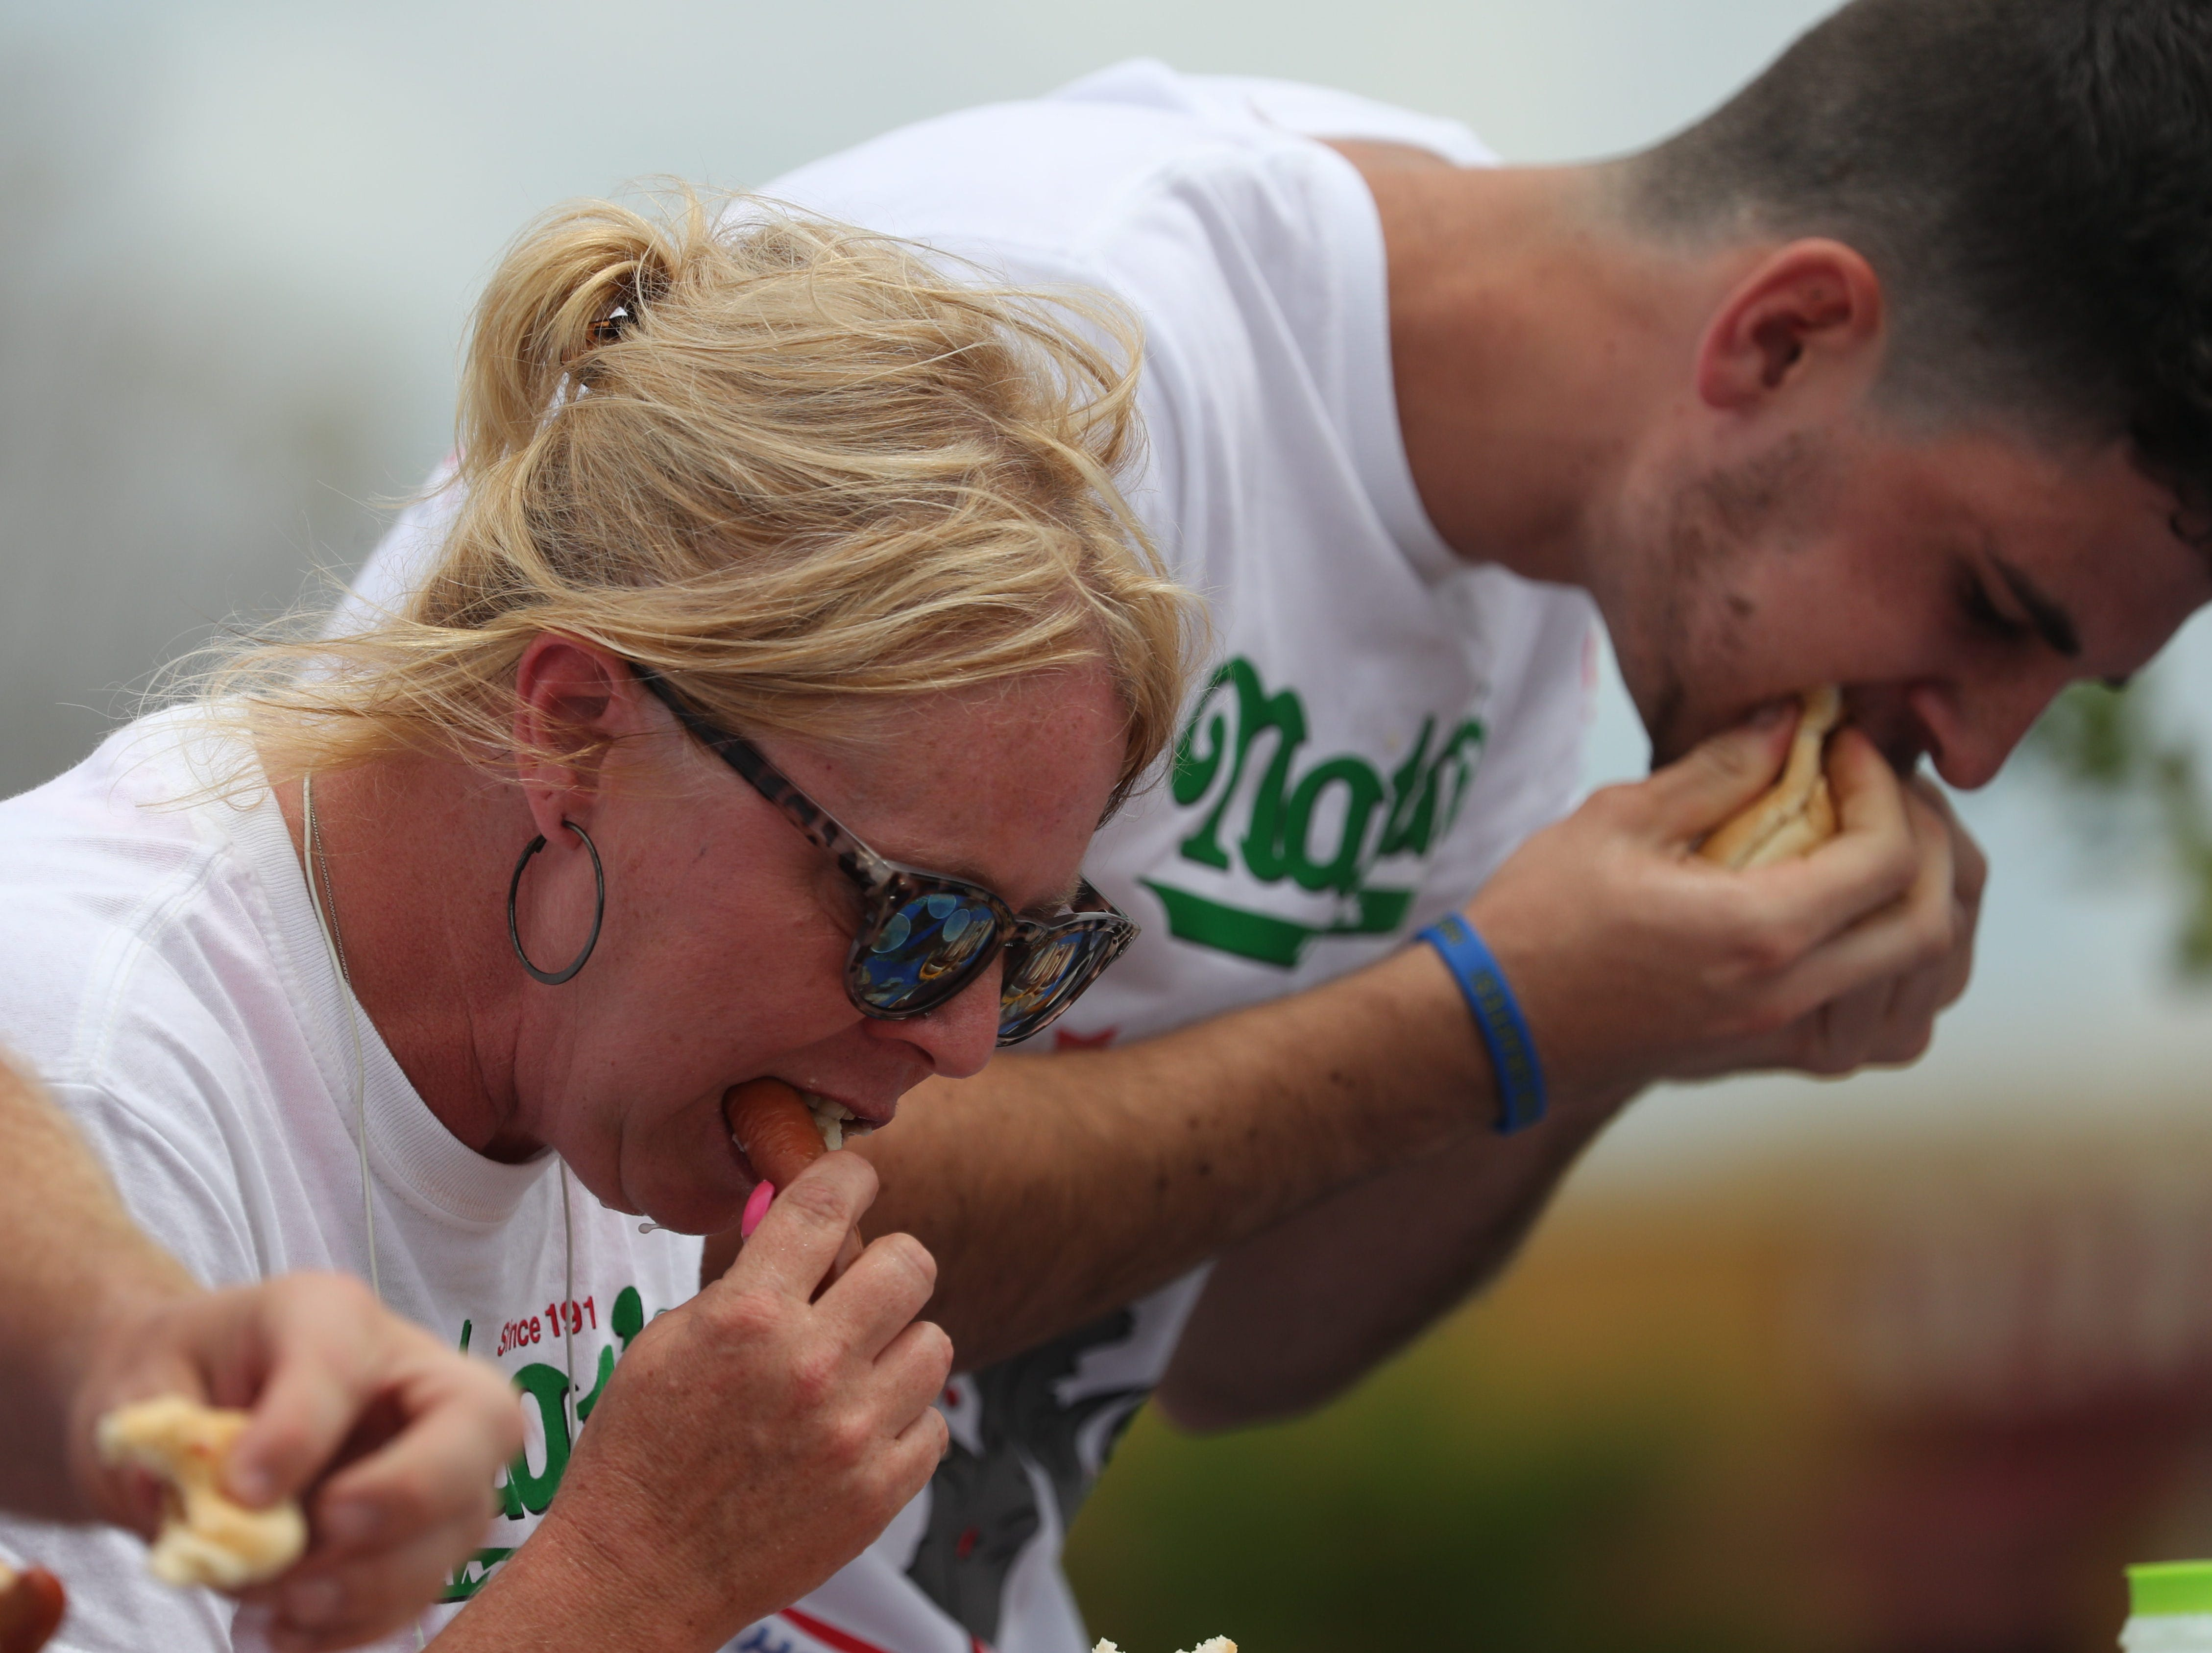 Competitors in the Nathan's Famous Hot Dog Eating Contest eat as many hot dogs as possible in ten minutes on Saturday, April 13, 2019, in Cape Coral.